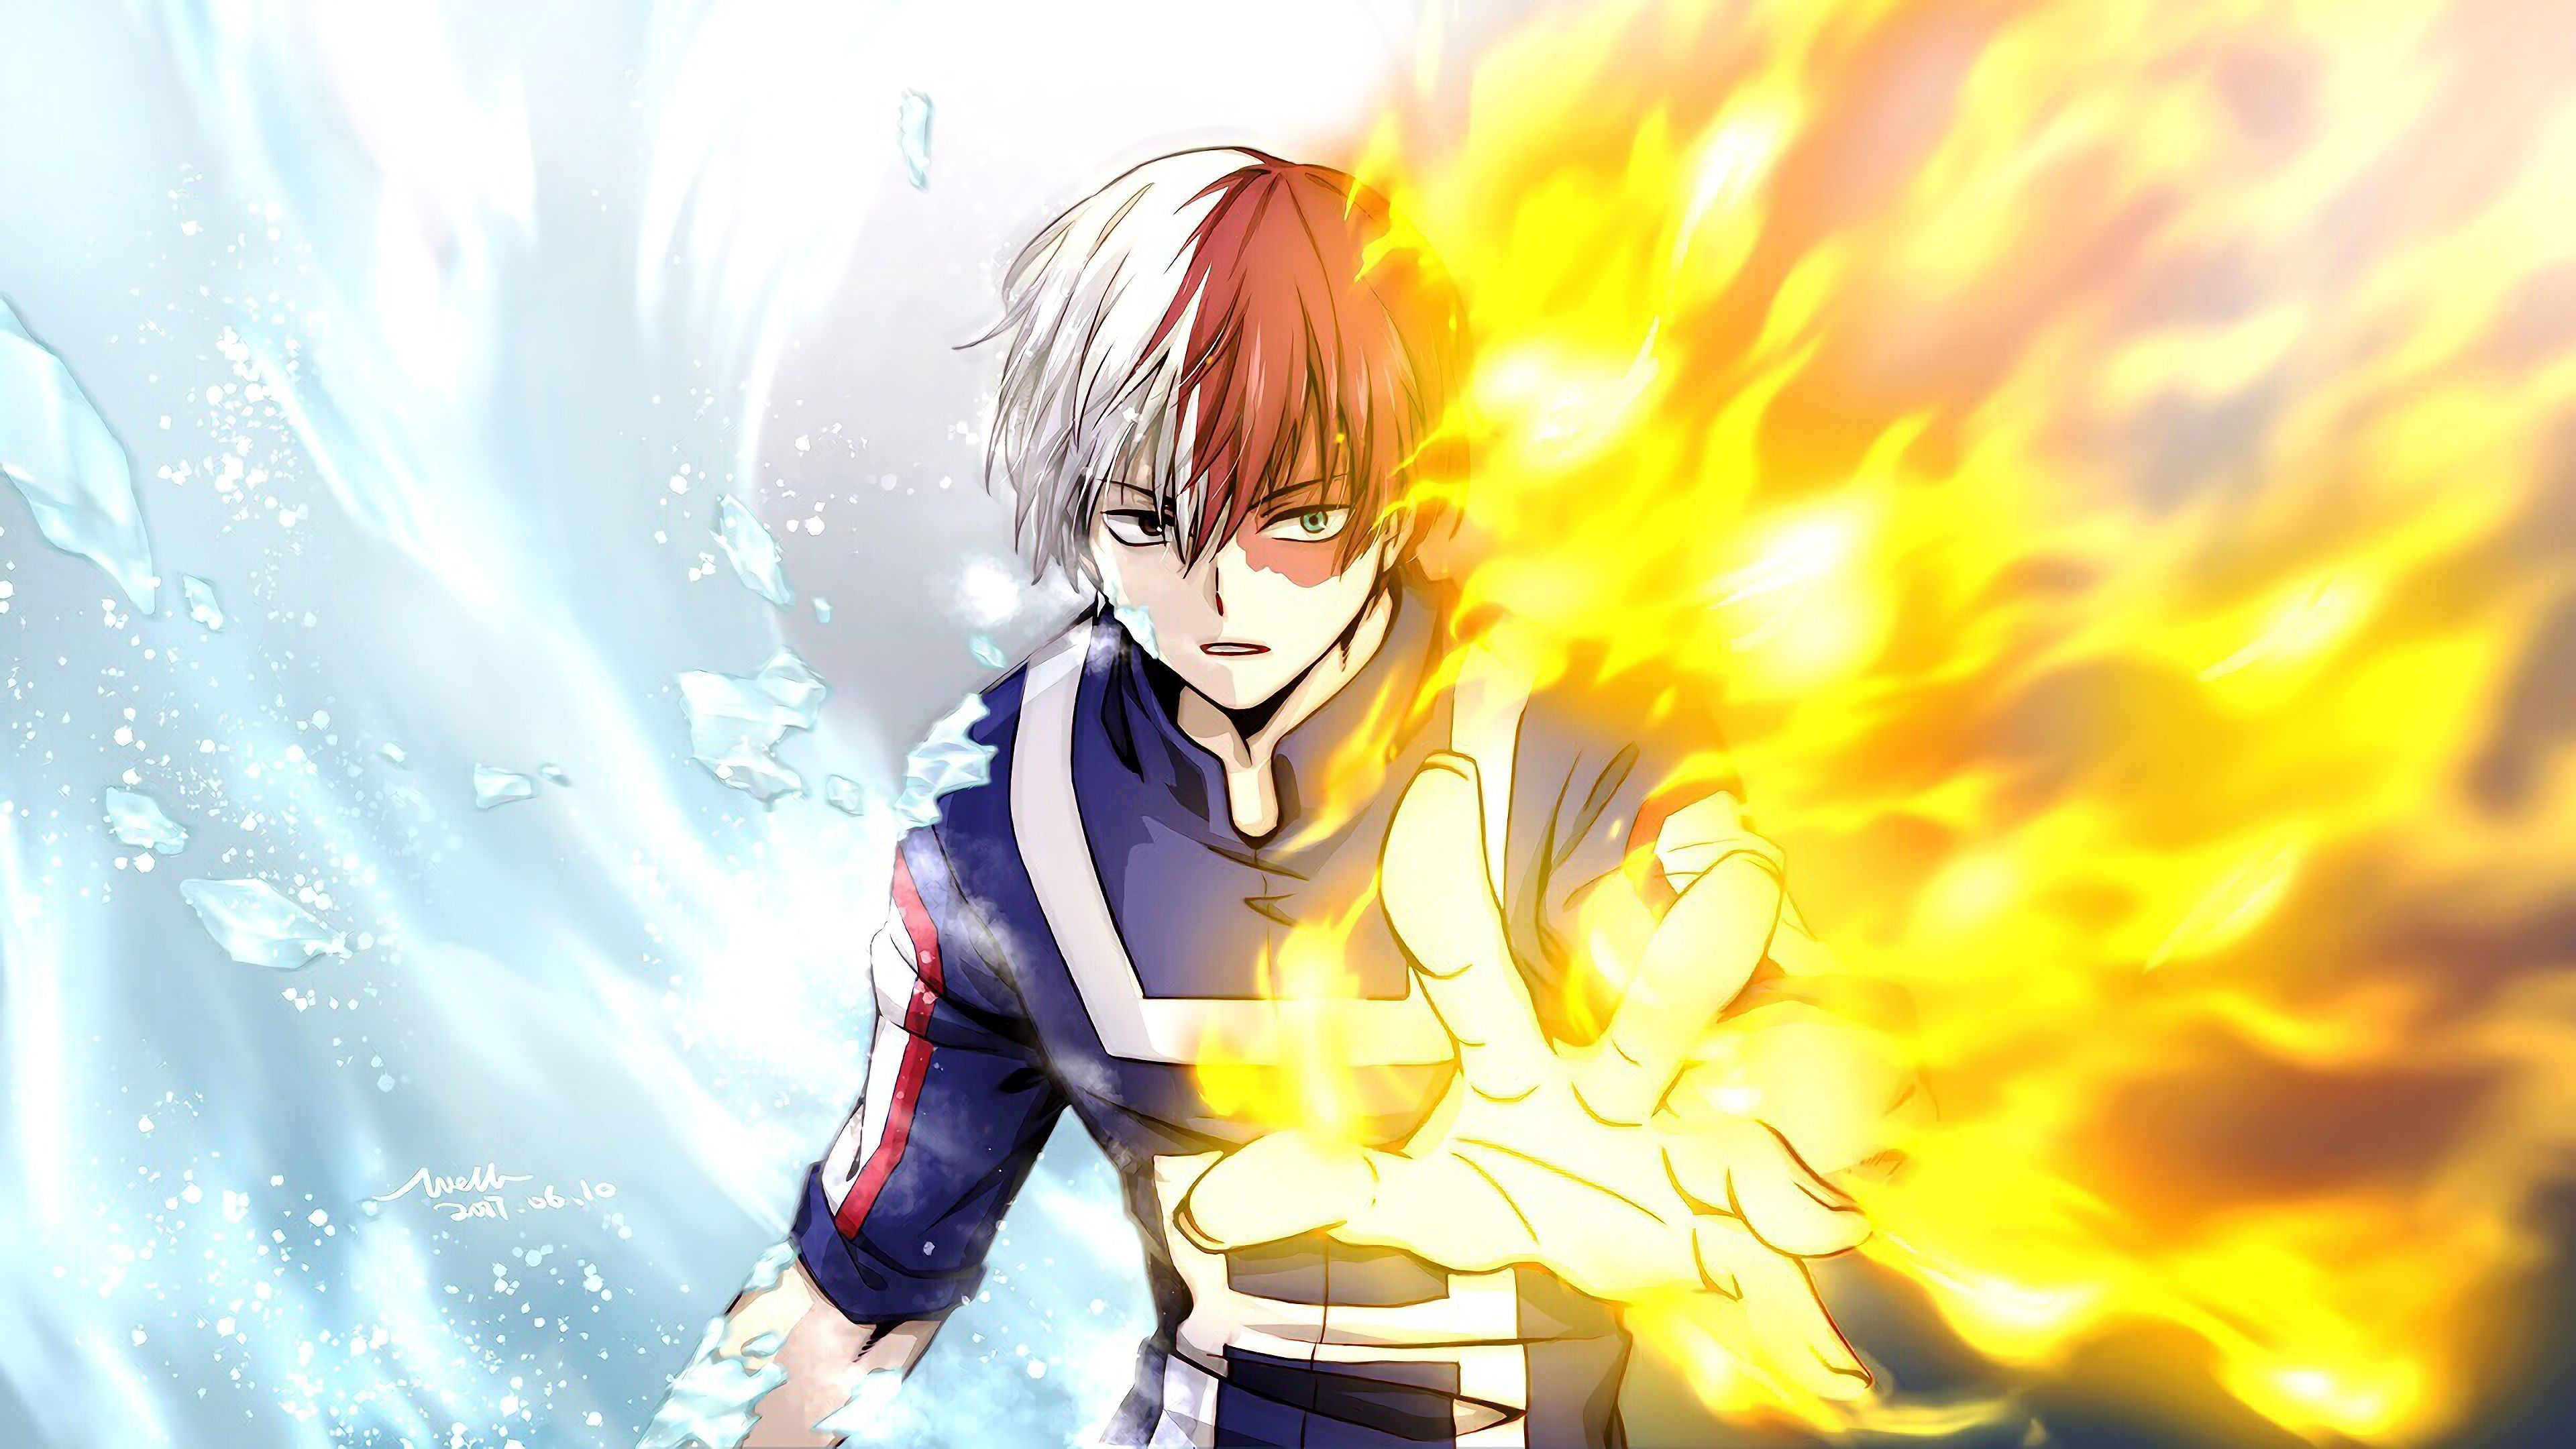 Free Download Todoroki Wallpaper Hd My Hero Academia My Hero